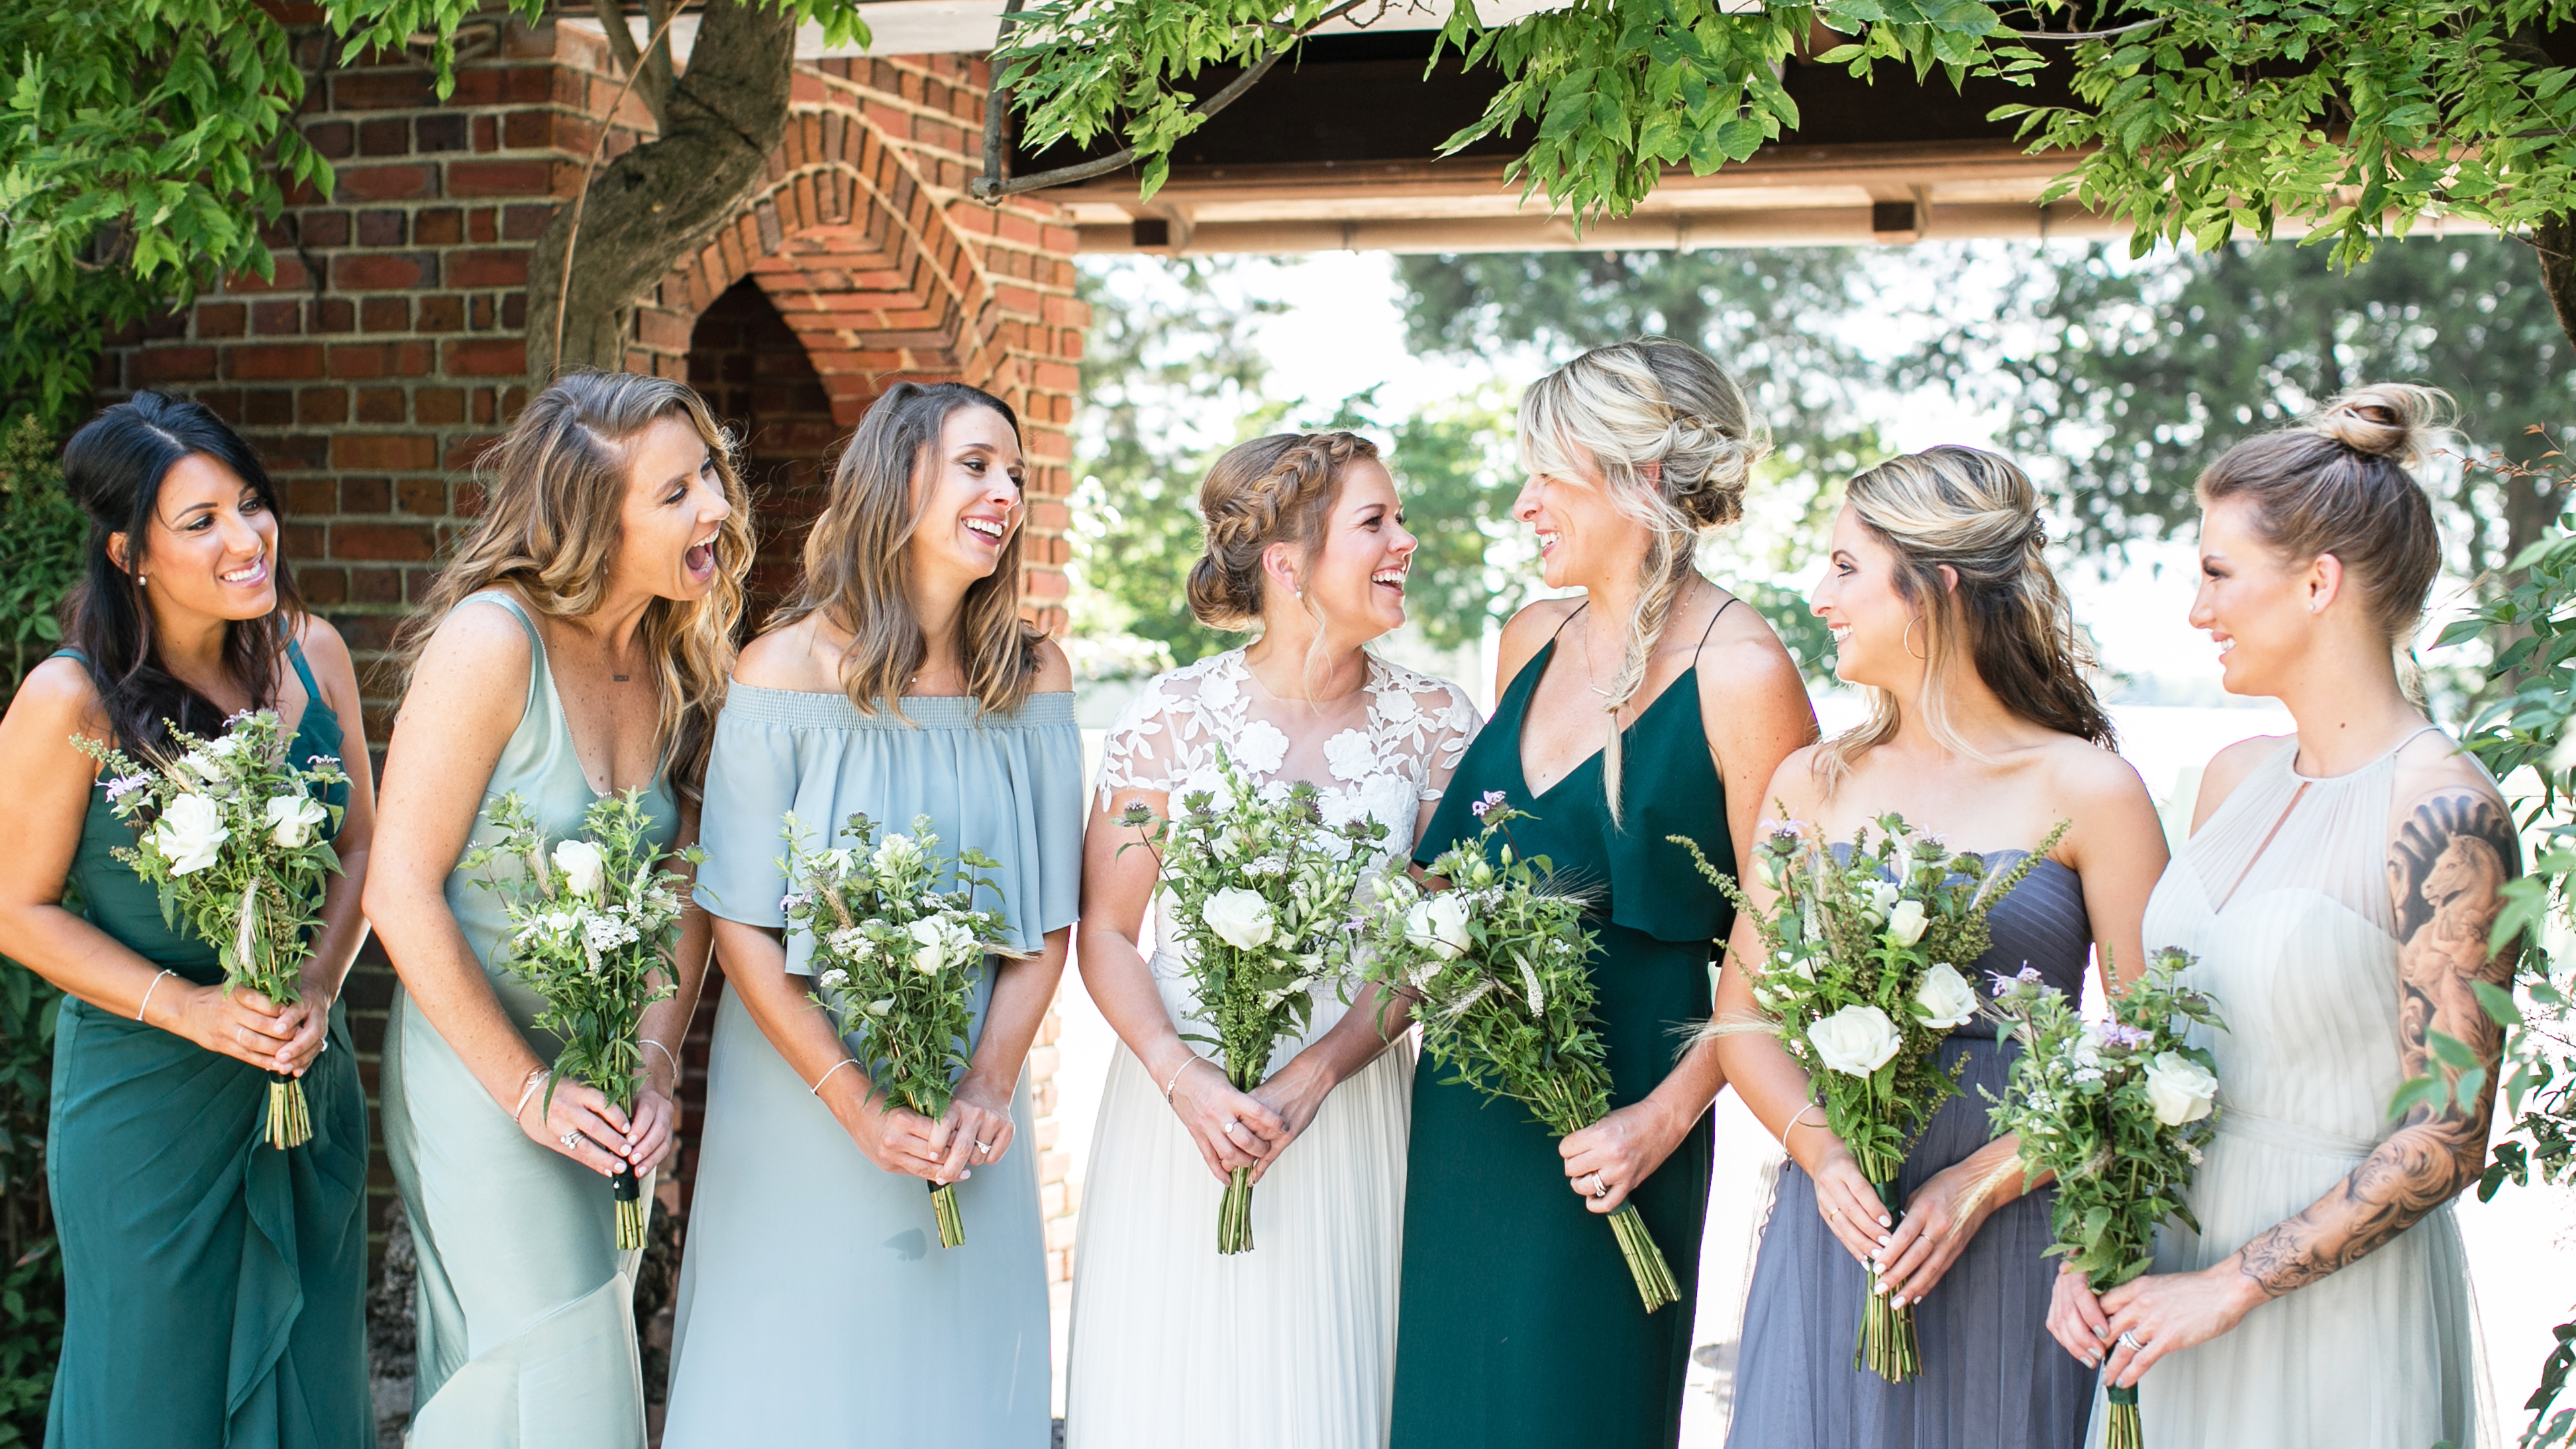 hermitage museum and gardens wedding norfolk virginia bridesmaids with bride portrait